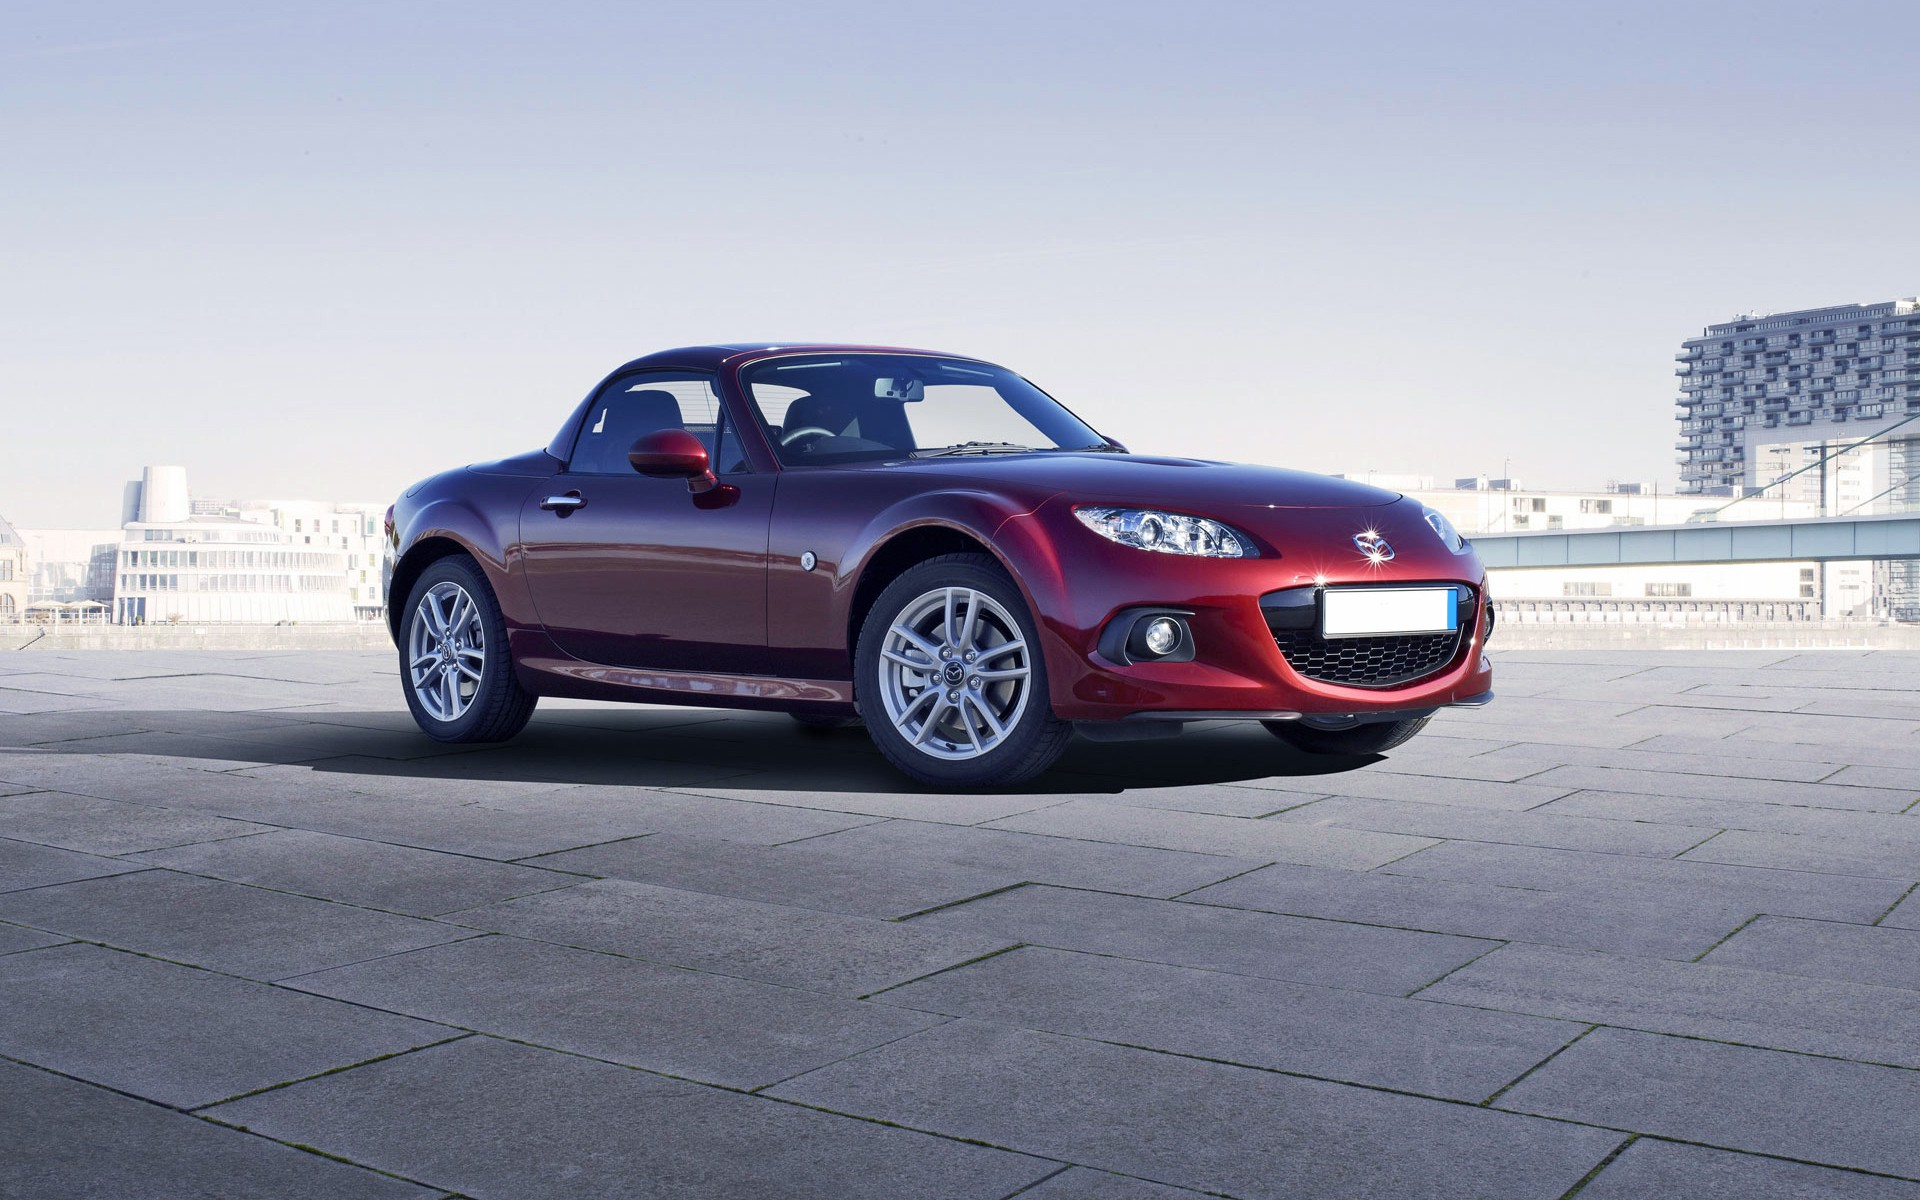 style and romantic mazda mx 5 coupe car hd wallpaper images download